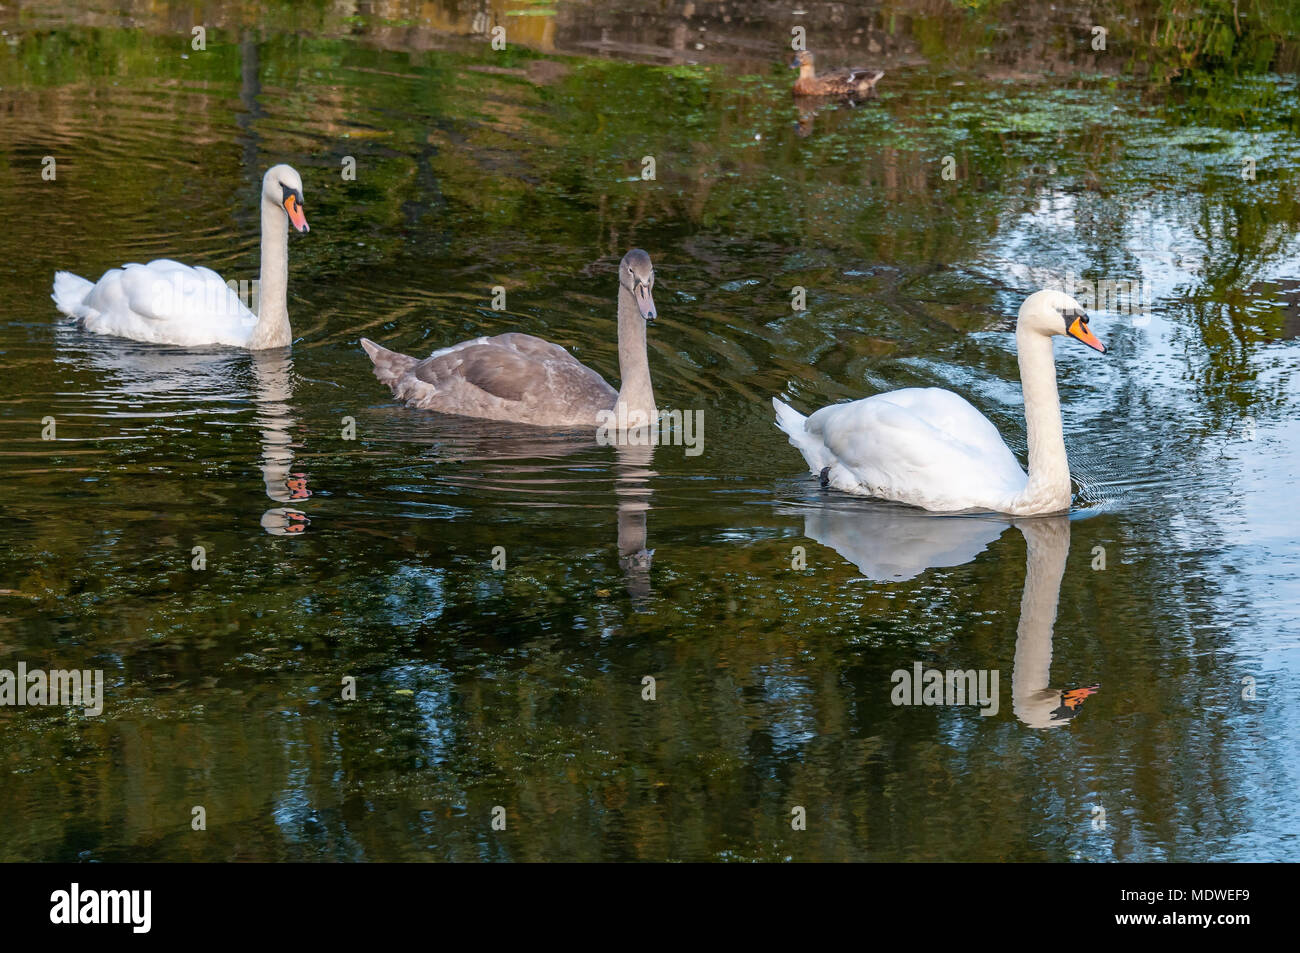 Family of swans Pen cob and cygnet. - Stock Image